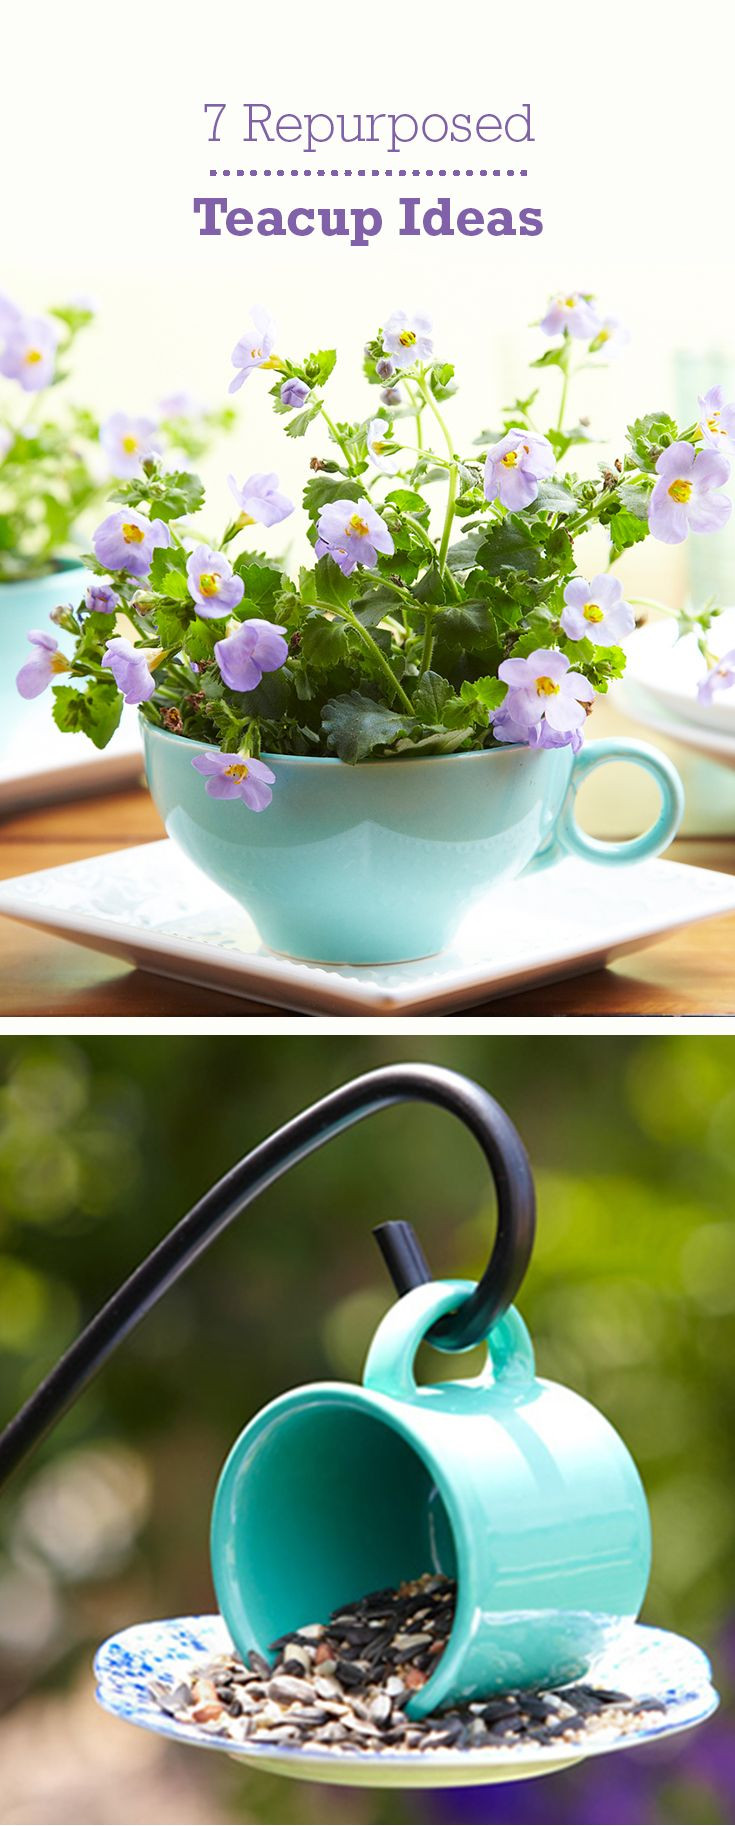 Home Craft Ideas For Adults  51 best Craft Ideas for Adults images on Pinterest